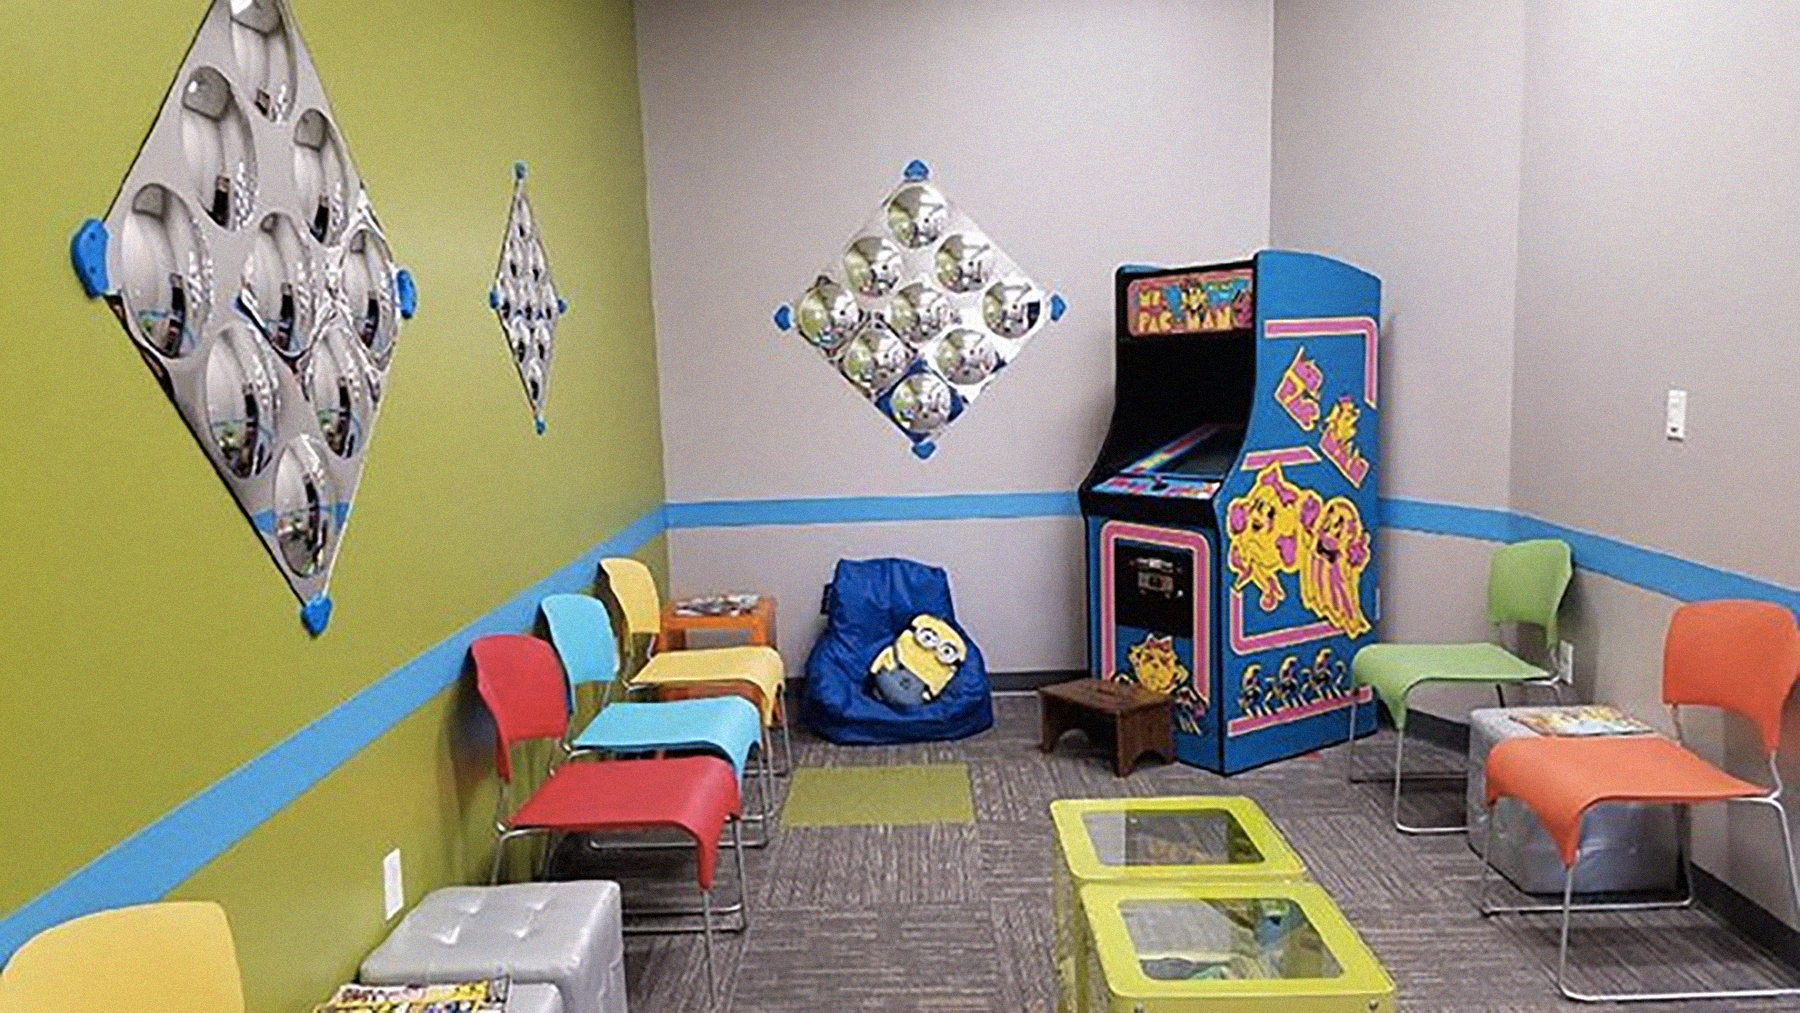 A PacMan arcade game keeps kids occupied if there's a wait at Little Eyes Pediatric Eye Care.